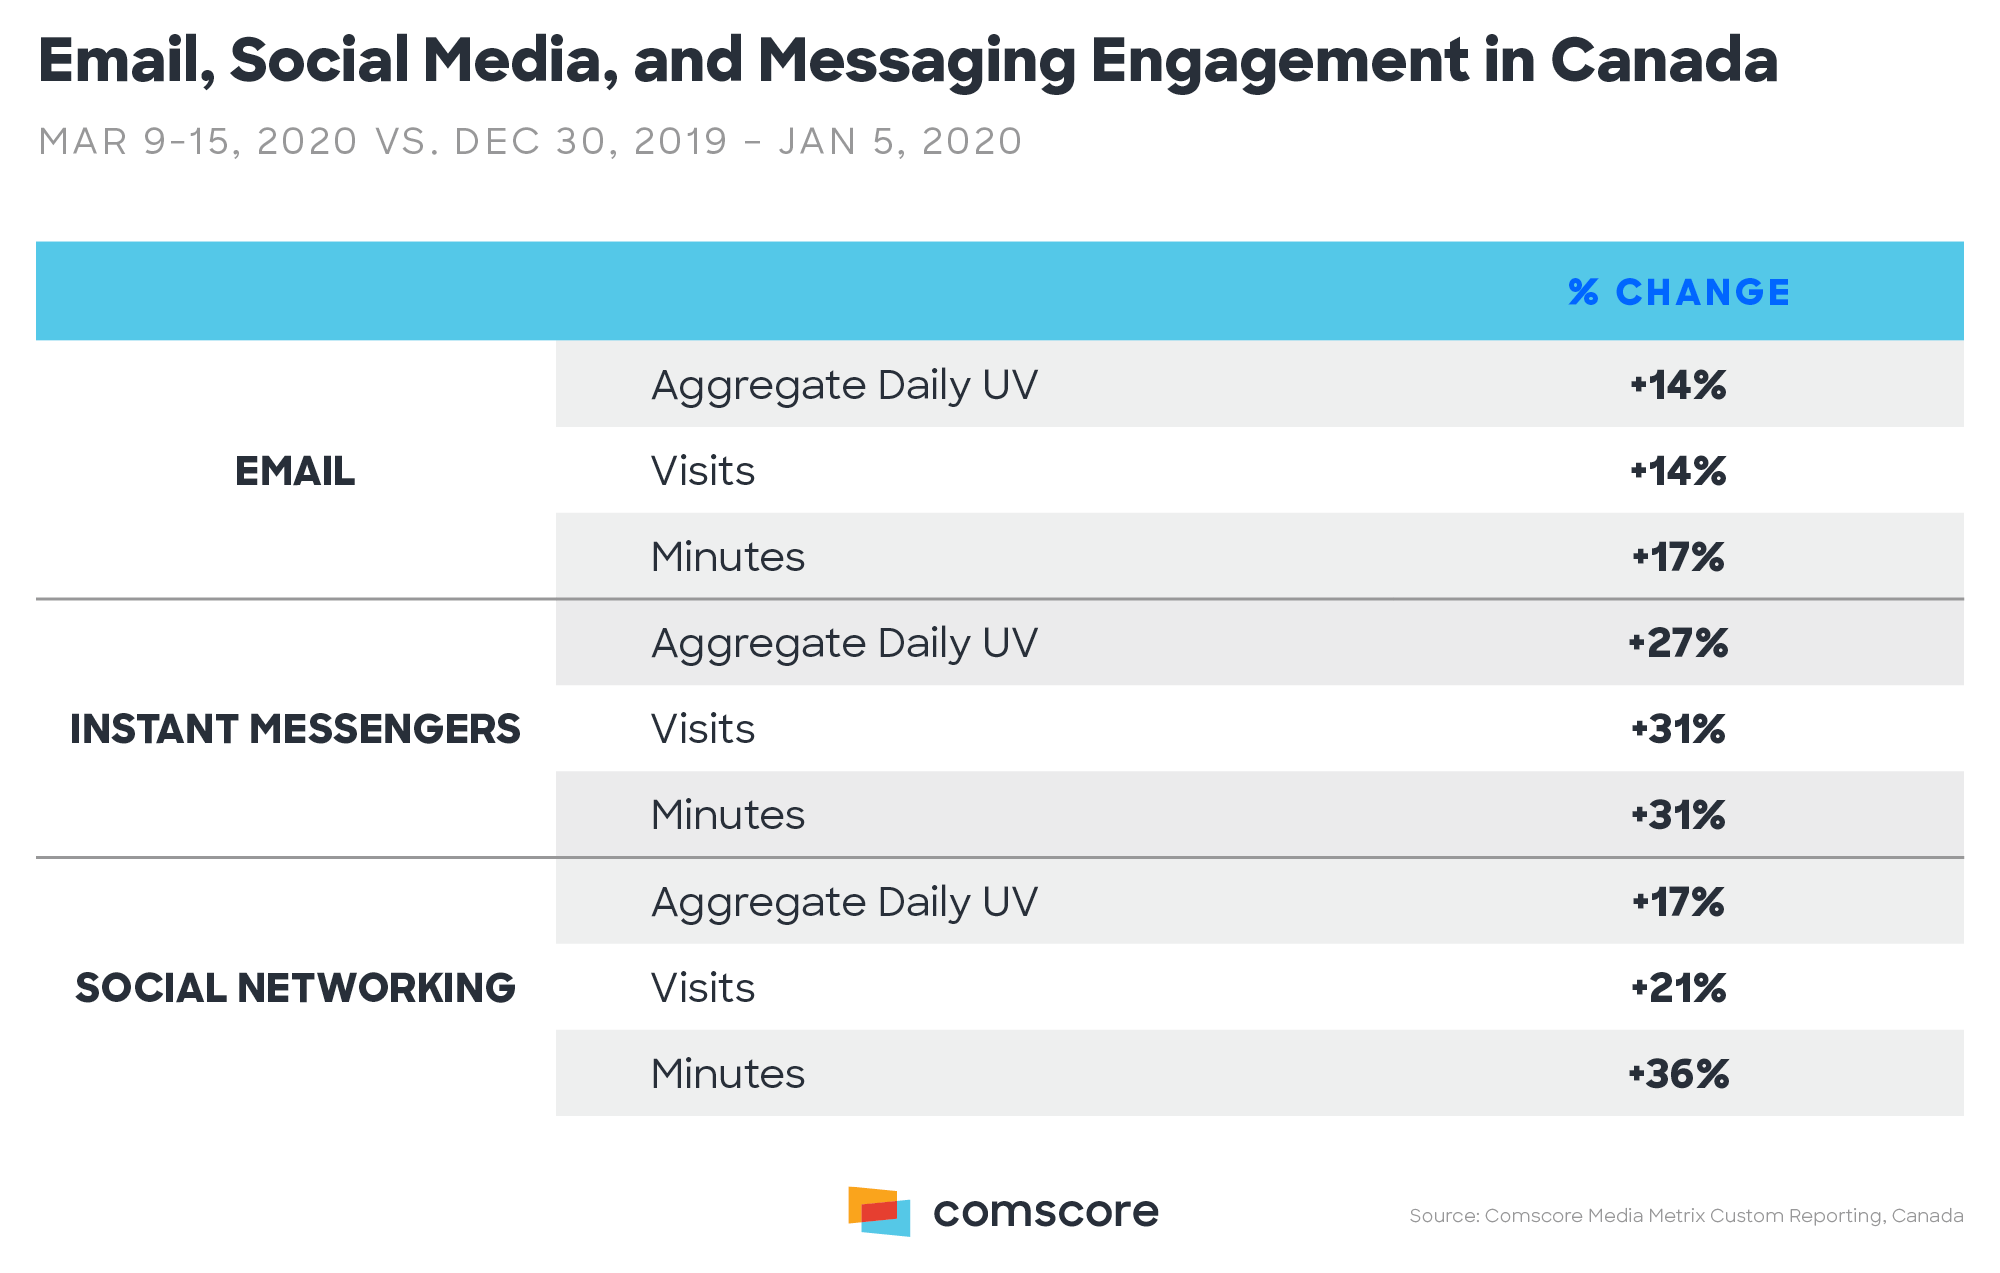 email, instant messengers and social networking engagement